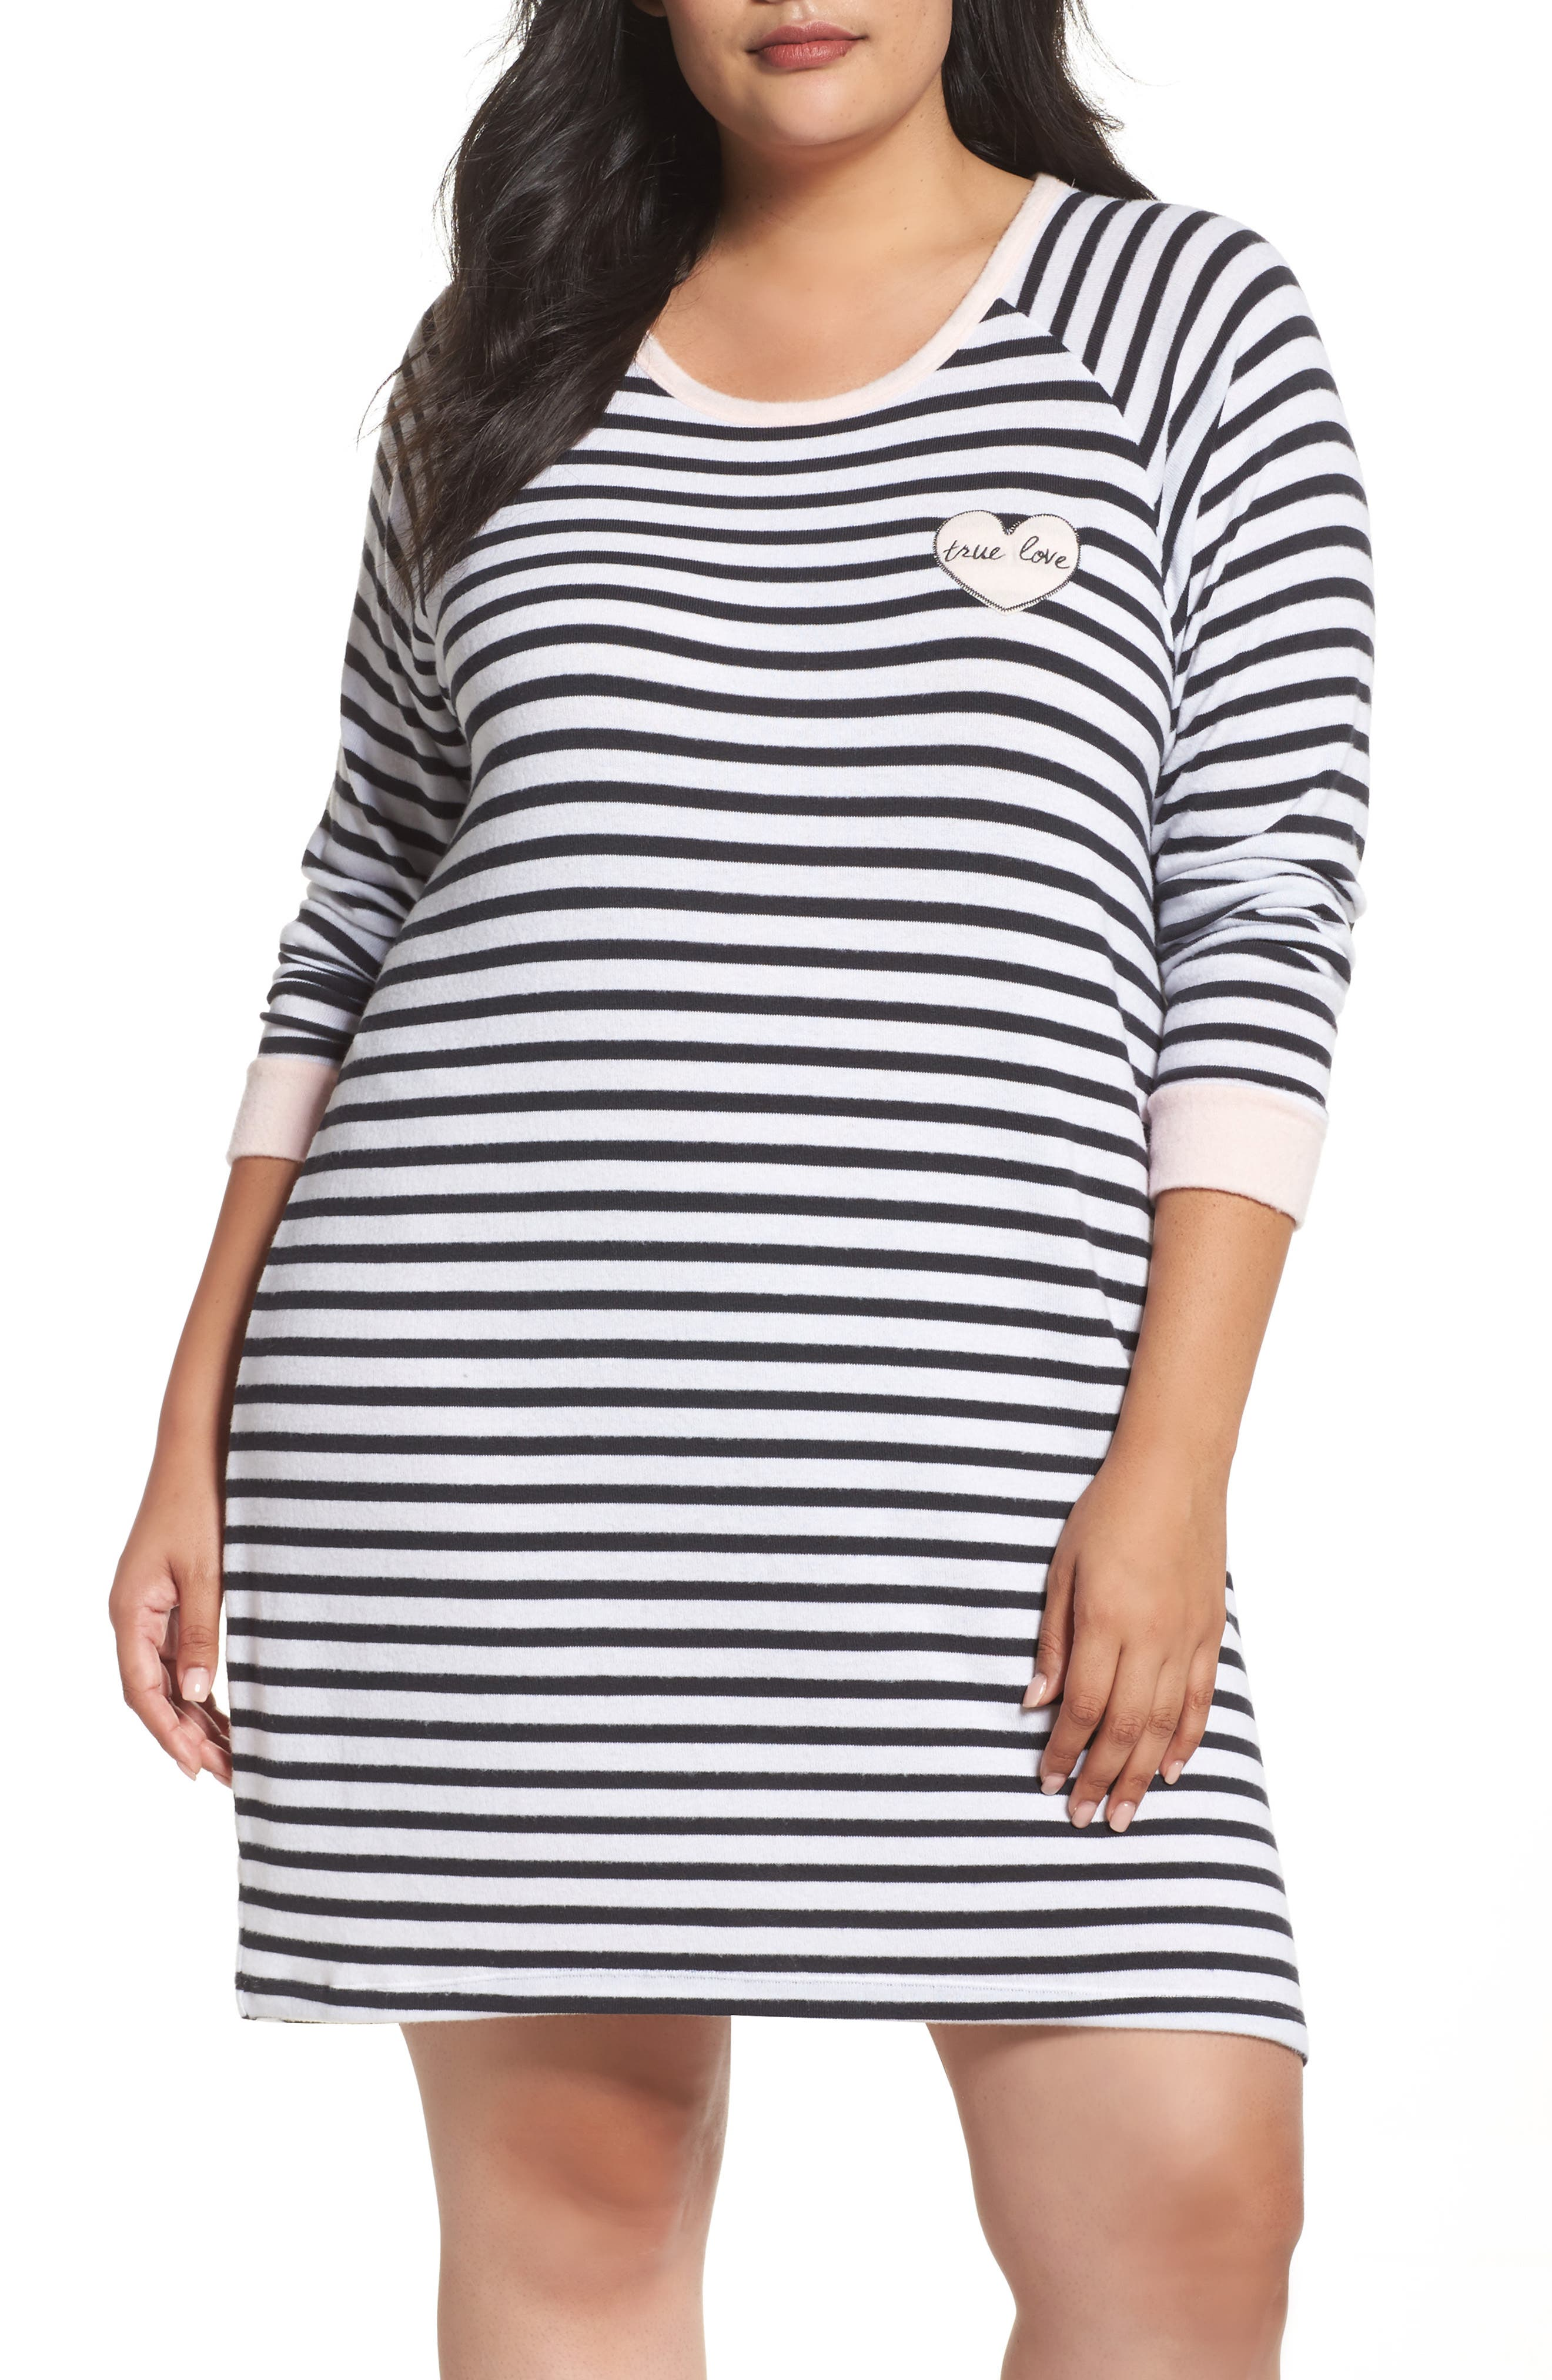 Stripe Peachy Jersey Nightshirt,                             Main thumbnail 1, color,                             900